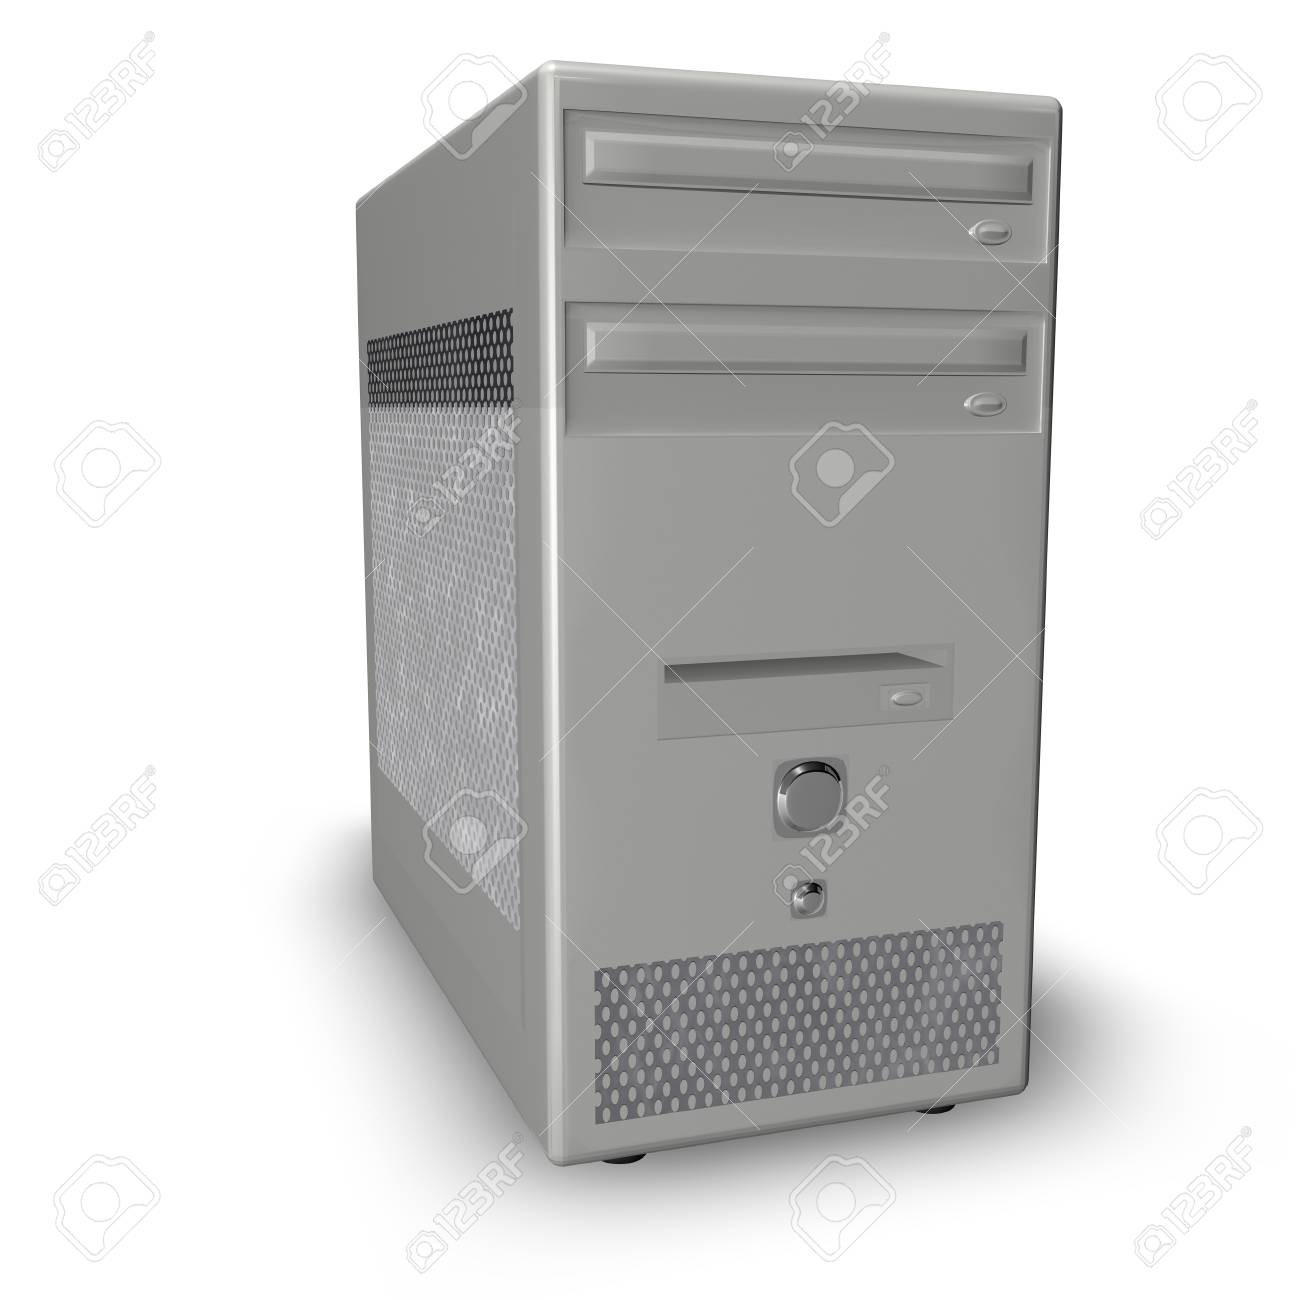 computer case isolated on white background Stock Photo - 3979513